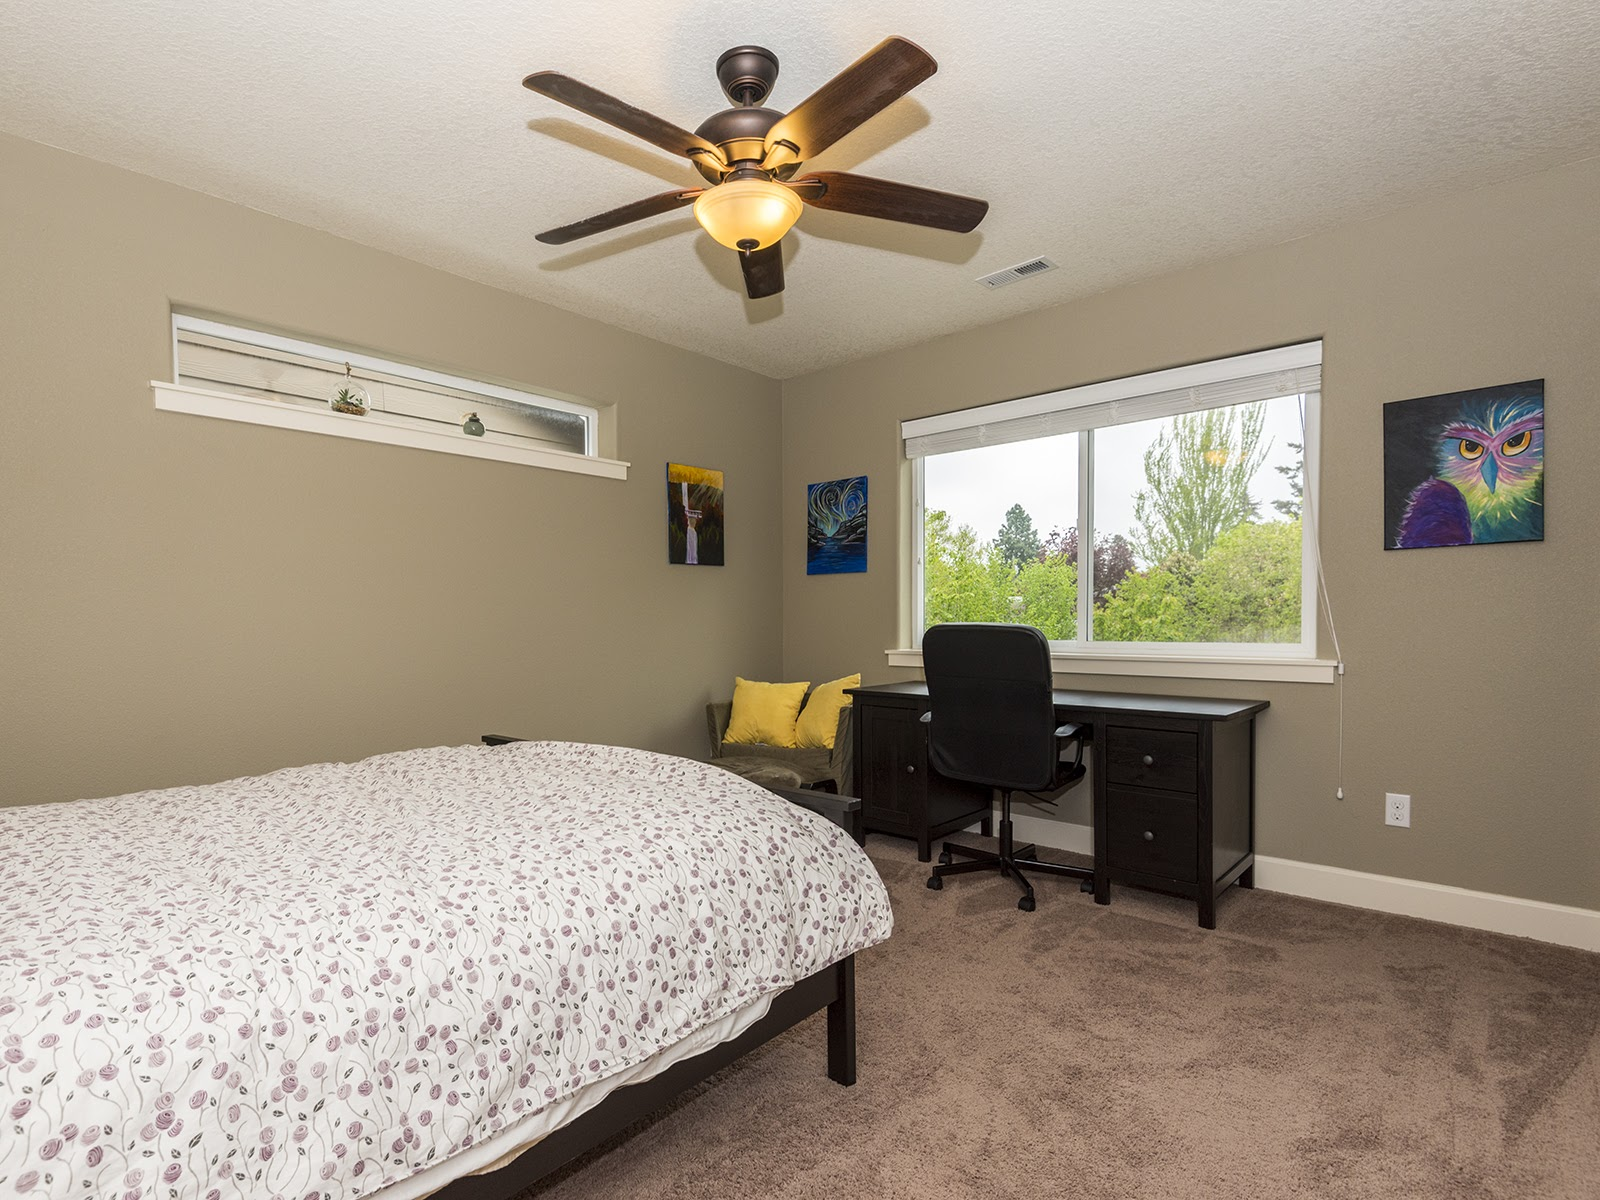 2nd bedroom with large window with a nice view